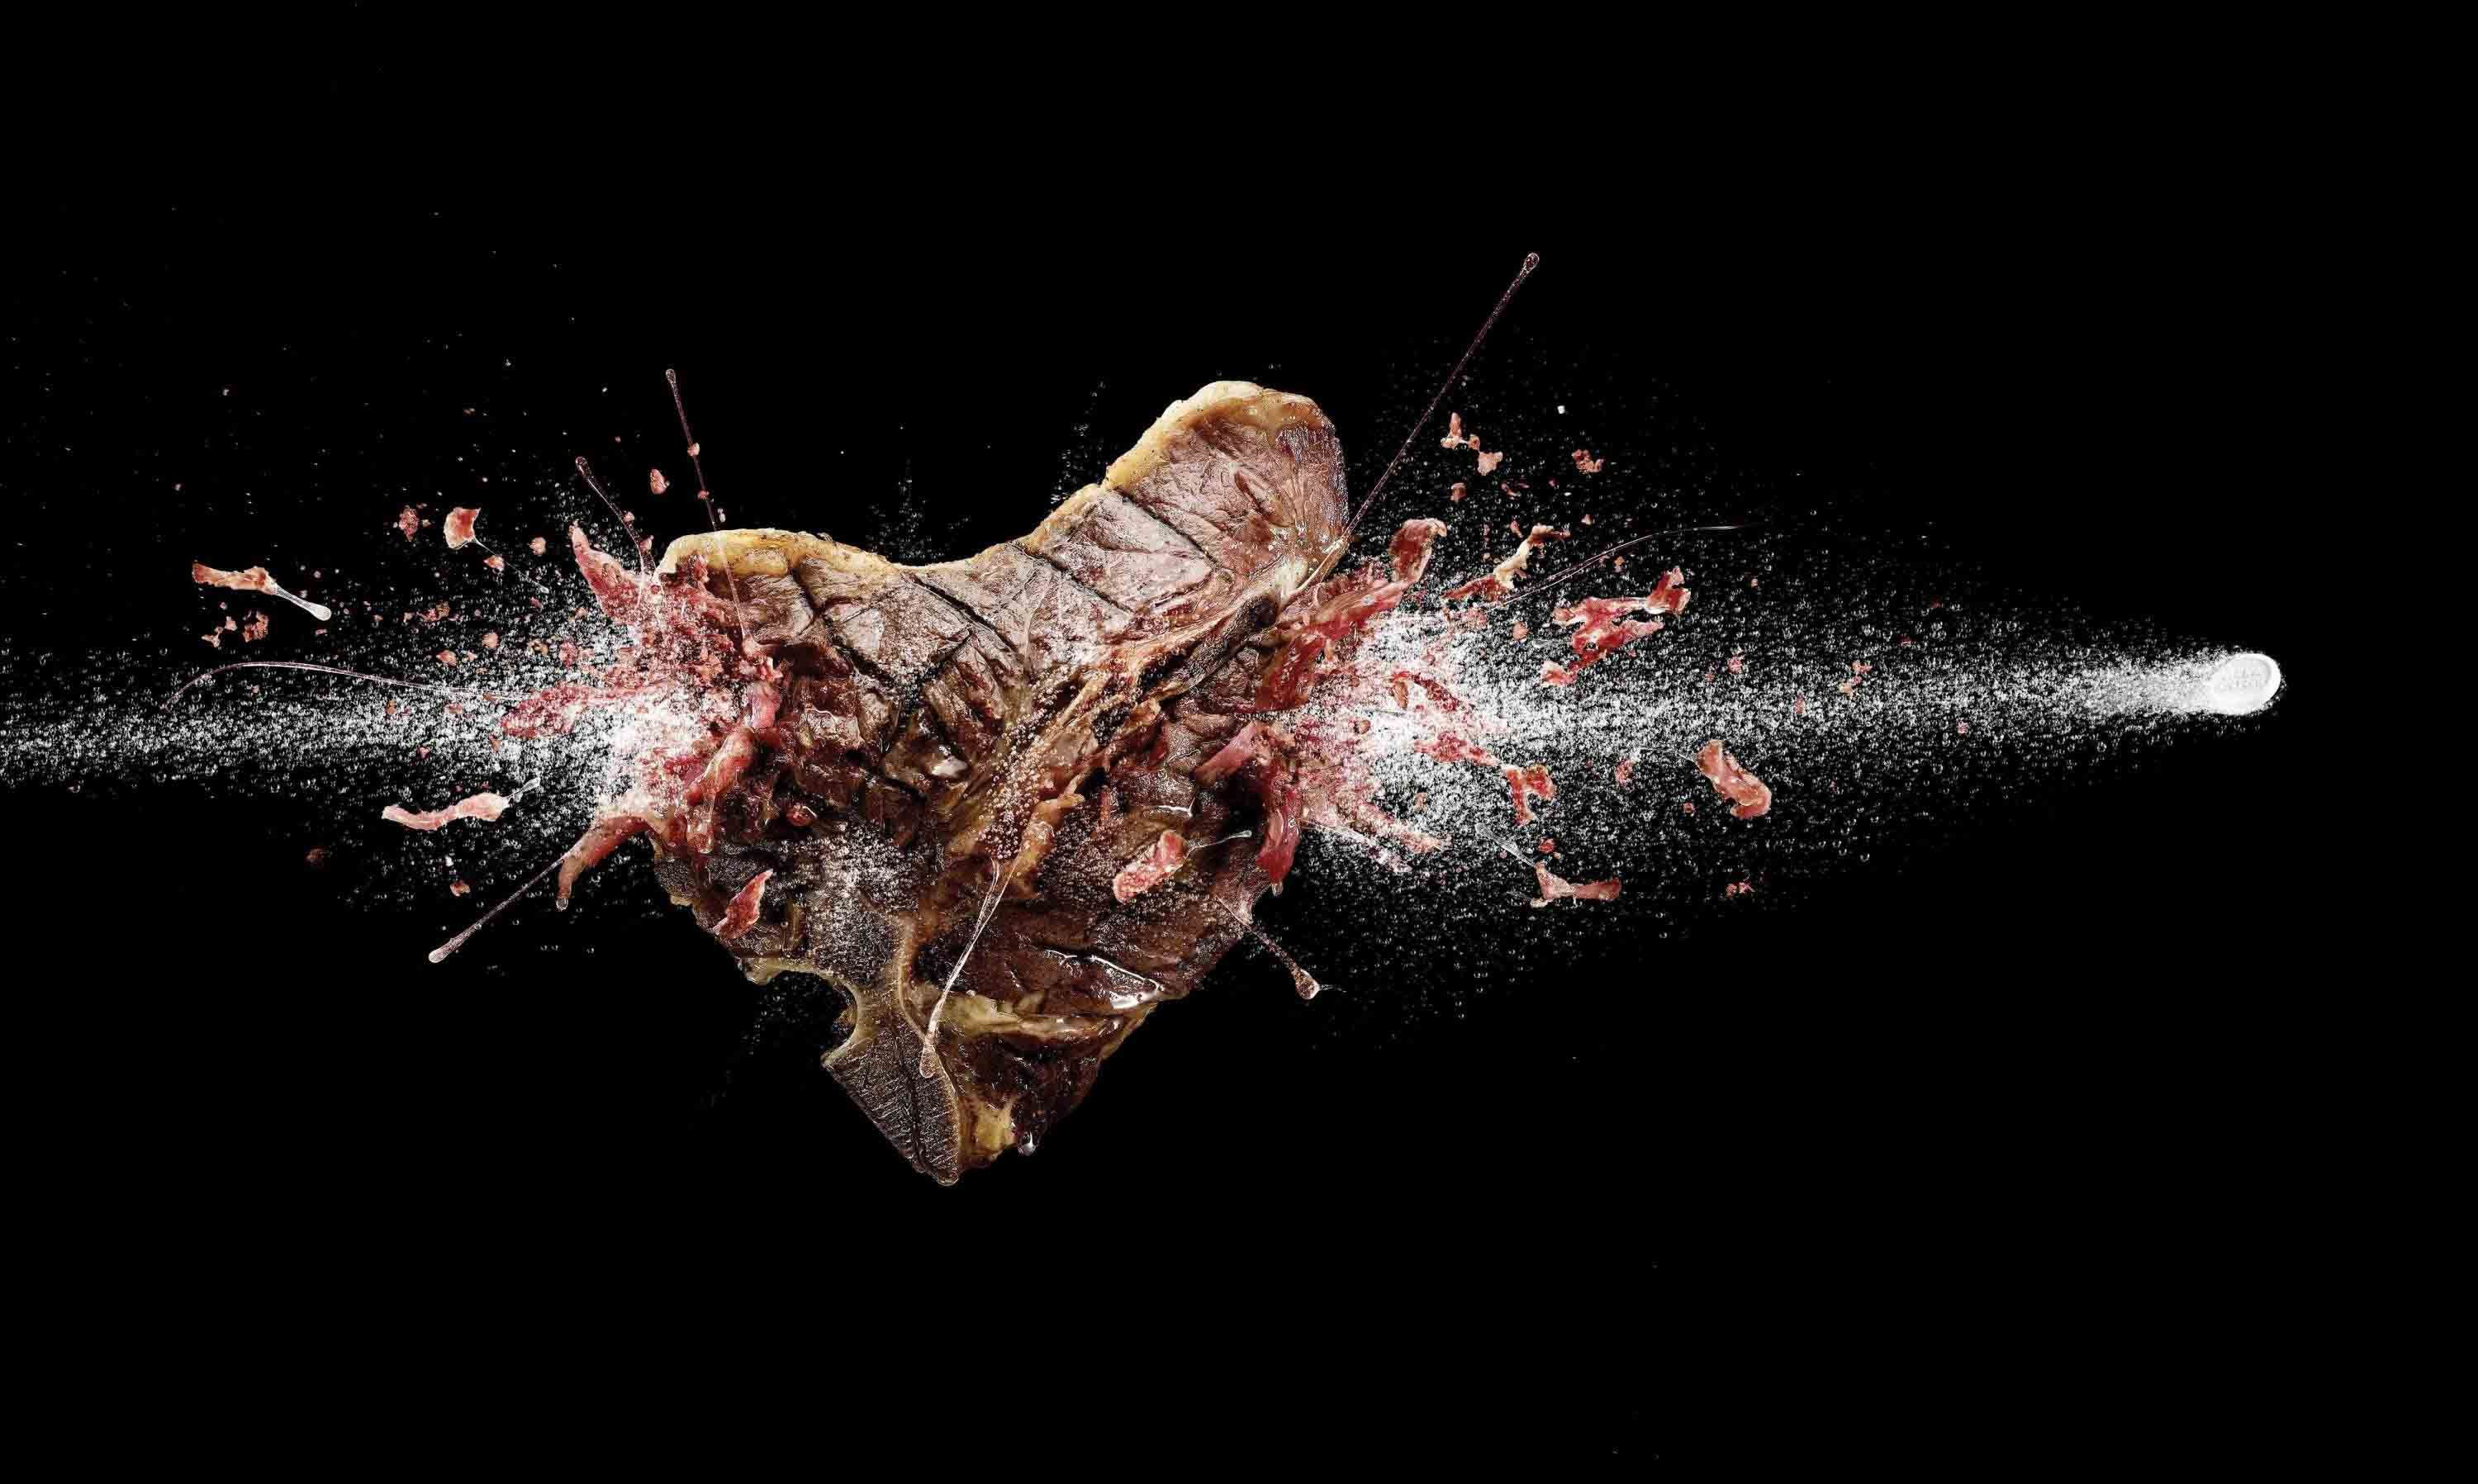 Hd slow motion bullet wallpapers image pics download